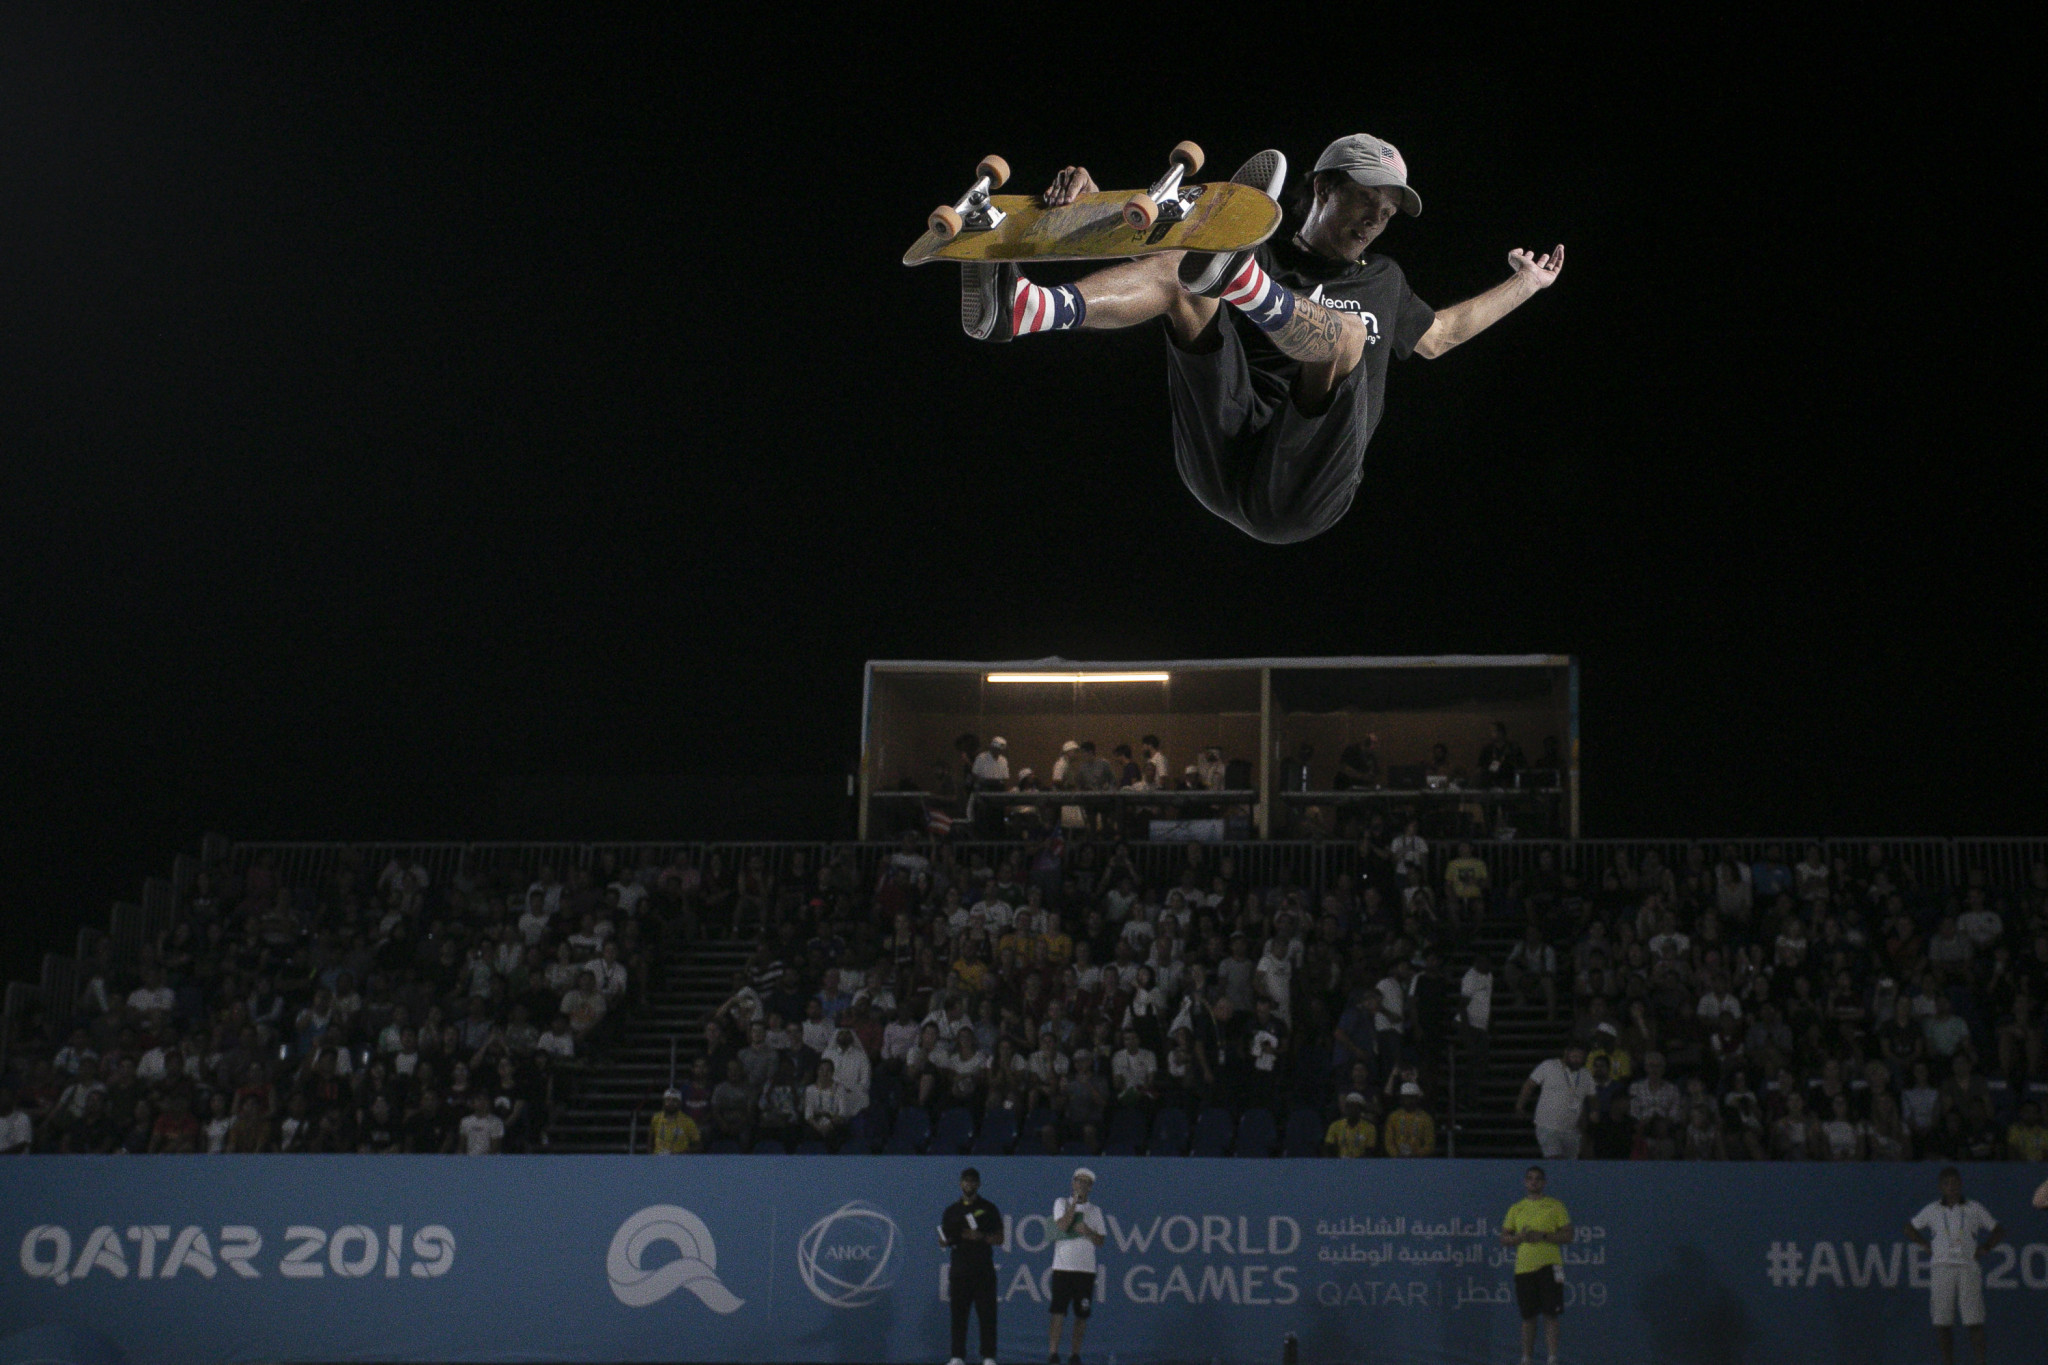 Skateboard competitions at the ANOC World Beach Games in Doha have been a spectacular success and increased excitemet for the sport's Olympic debut at Tokyo 2020 ©ANOC World Beach Games